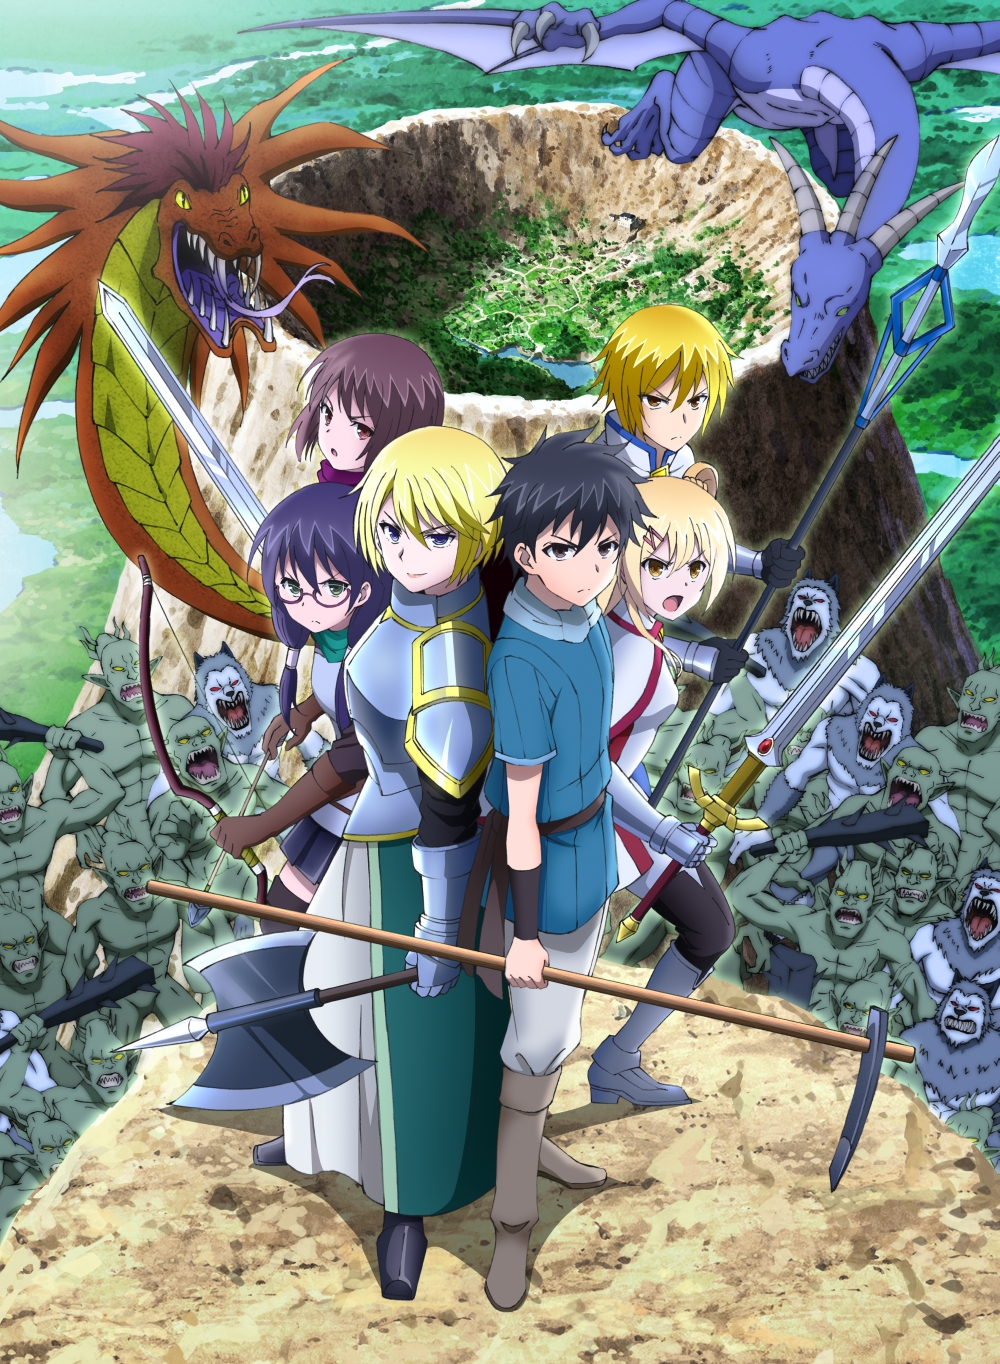 A new key visual for the I'm Standing on a Million Lives TV anime, featuring the hero party facing off against a horde of hobgoblins, beastmen, and dragons as they pose dramatically in front of the caldera of an extinct volcano that has formed a bowl-shaped valley filled with forest and ruins.